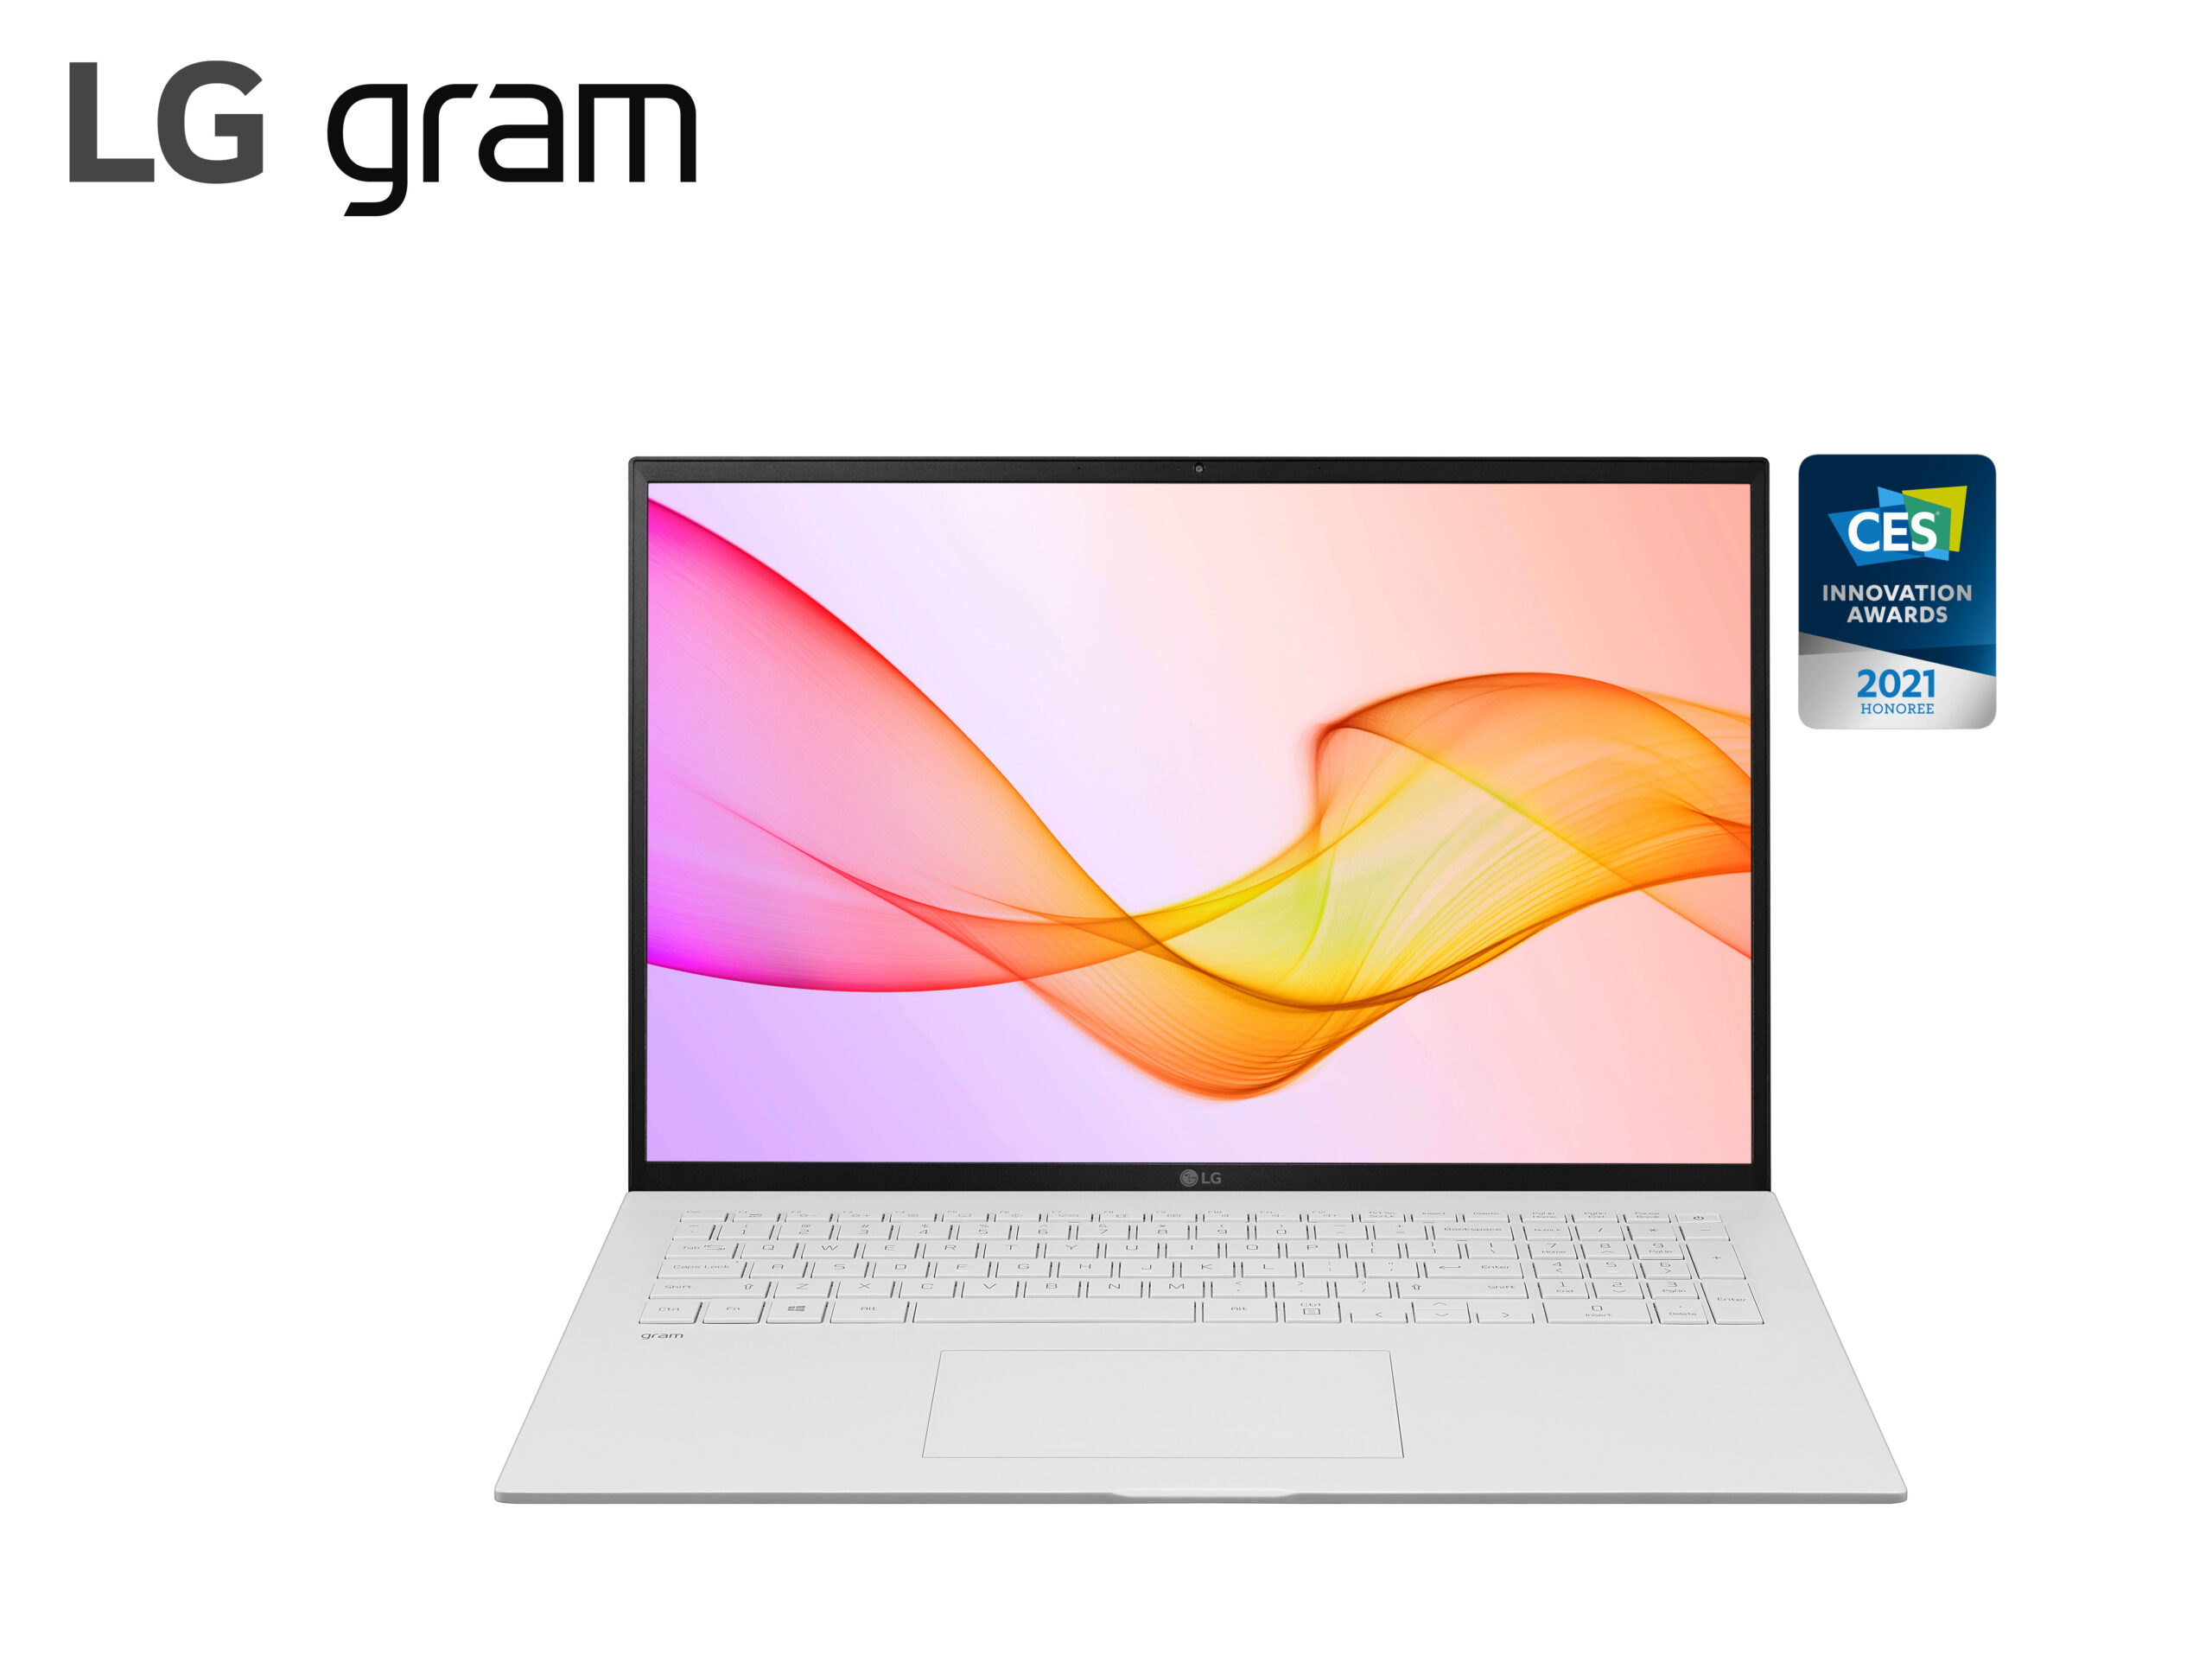 LG gram in white with its stylish new design beside the CES 2021 Innovation Awards Honoree logo